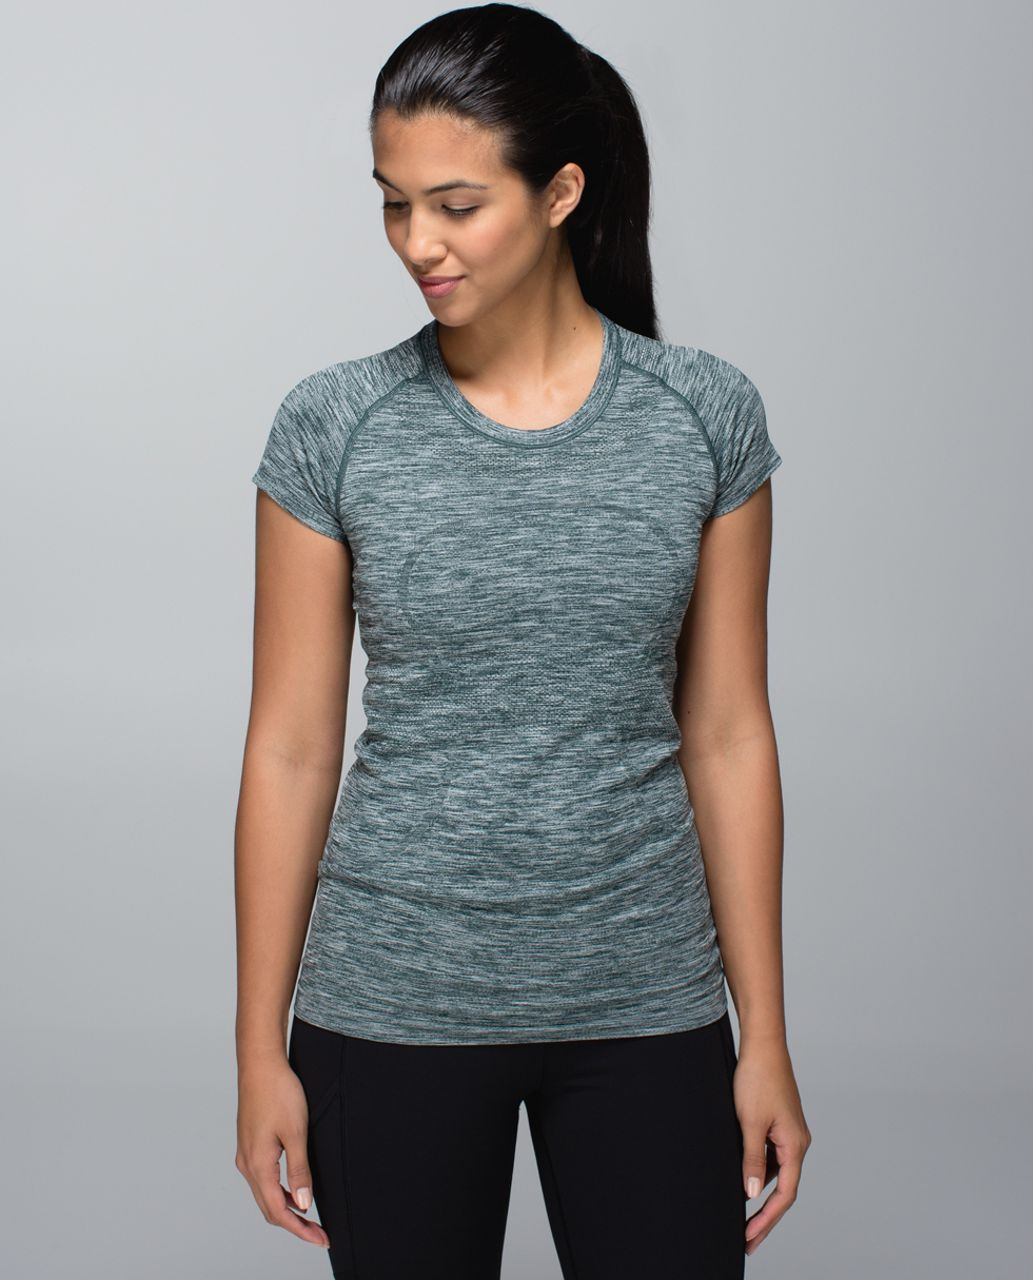 Lululemon Run:  Swiftly Tech Short Sleeve Crew - Space Dye Heathered Fuel Green